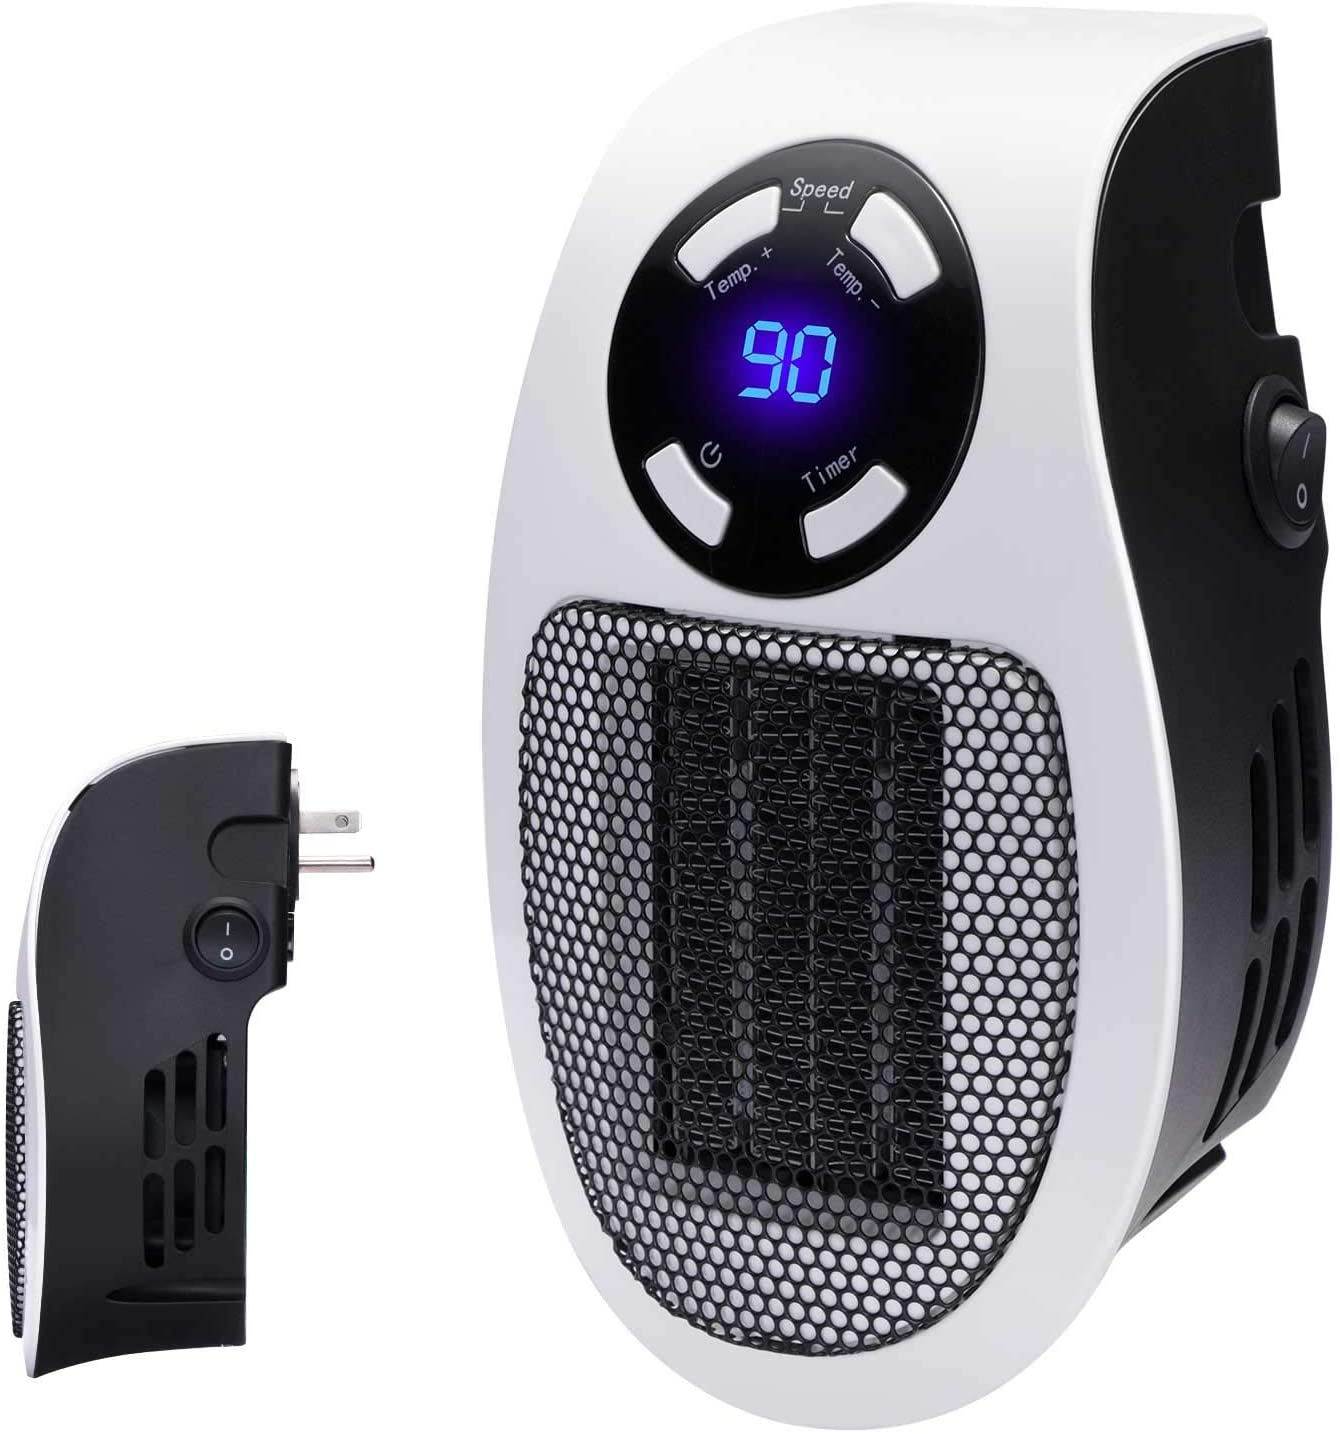 Programmable Courier shipping free shipping Space Heater with LED Electric Display Wall Courier shipping free Outlet